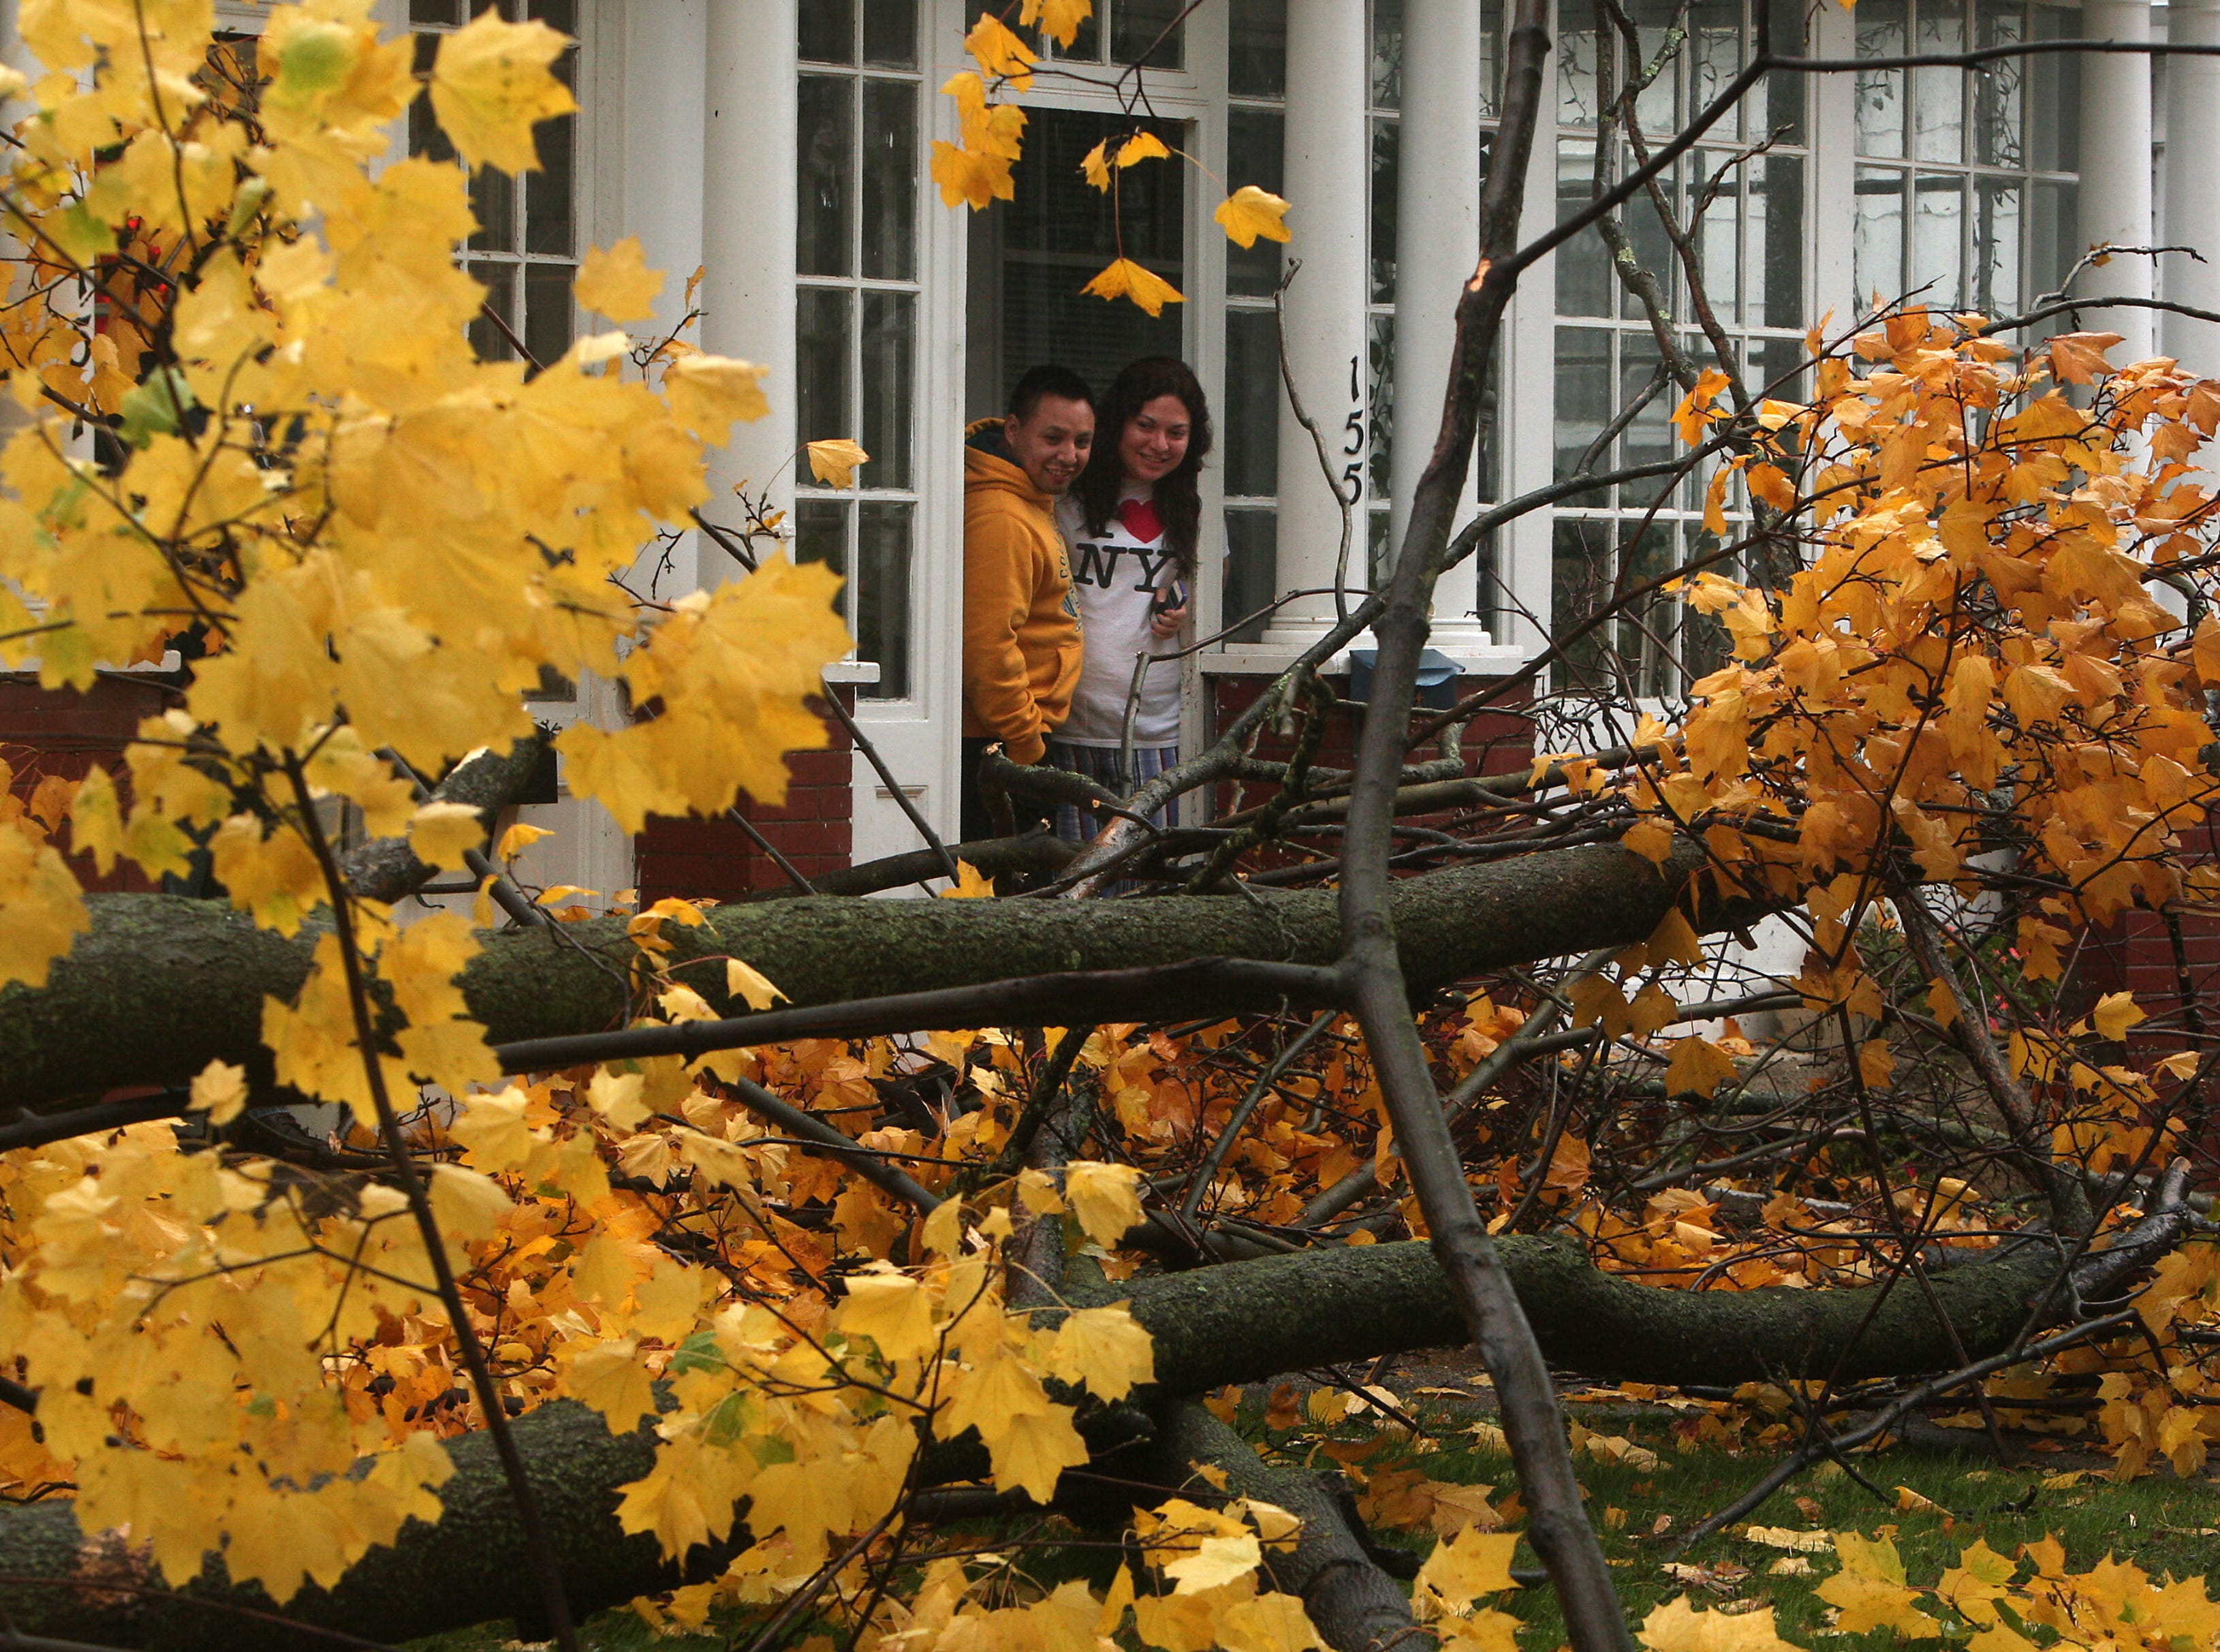 Morristown,NJ-- October 29, 2012--David Zwingle and his fiance Alejandra Juarez take a look out of their front door moments after a maple tree fell was blown down by high winds from Hurricane Sandy. Bob Karp/Staff Photographer/DAILY RECORD